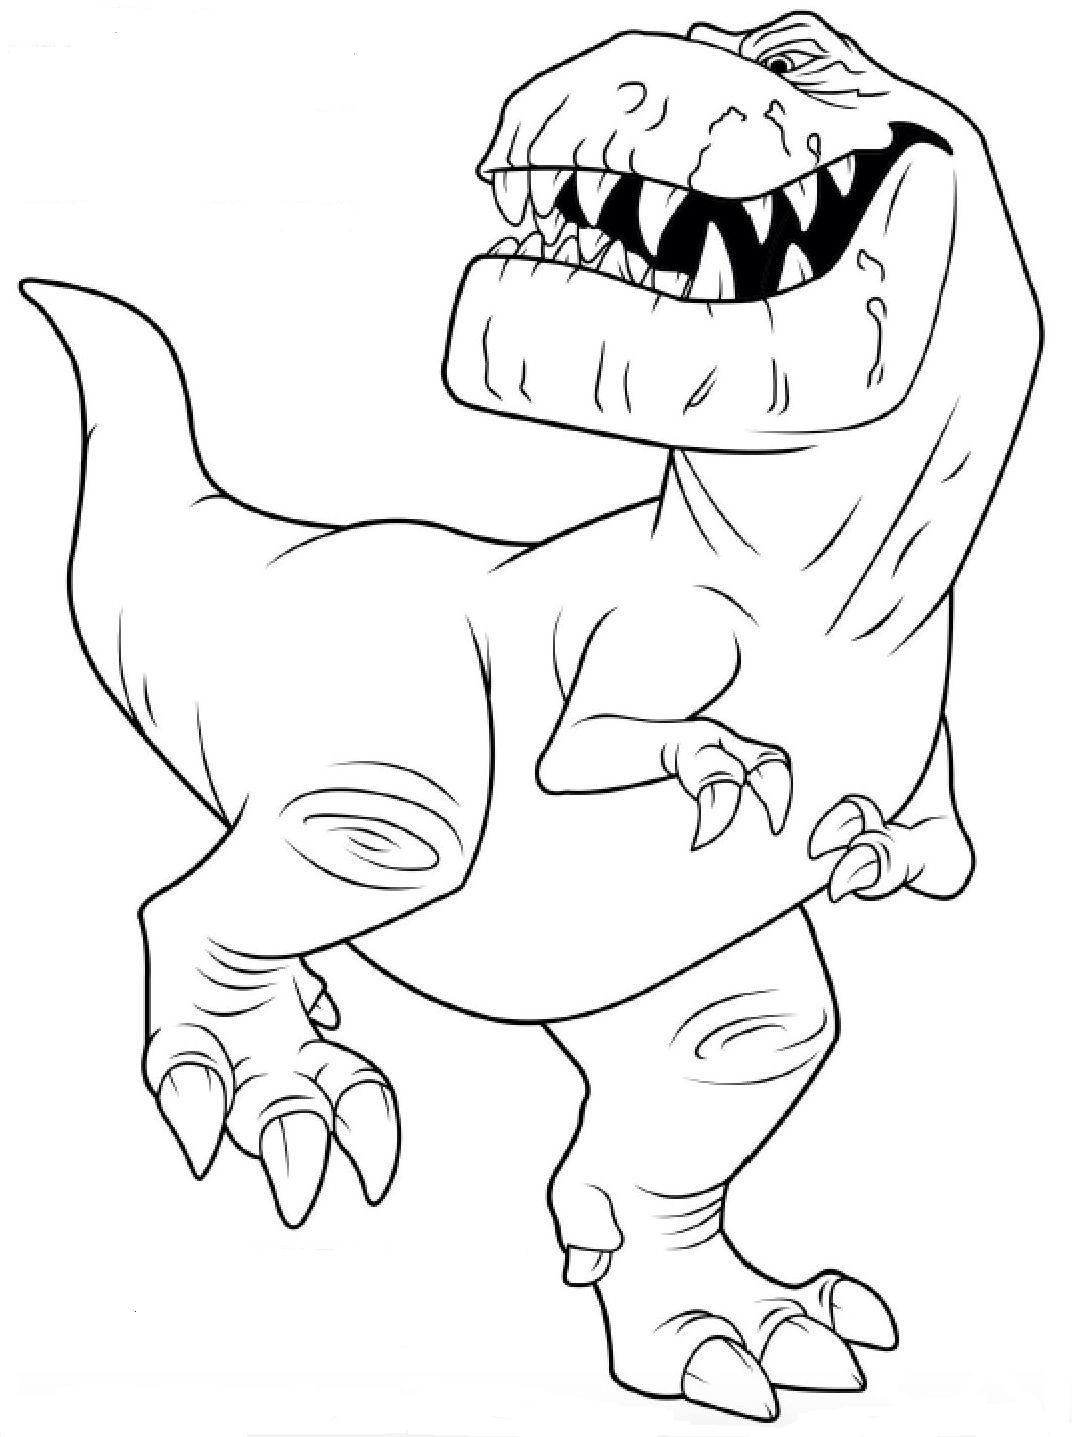 Pin von ColoringsWorld.com auf Dinosaur Coloring Pages | Pinterest